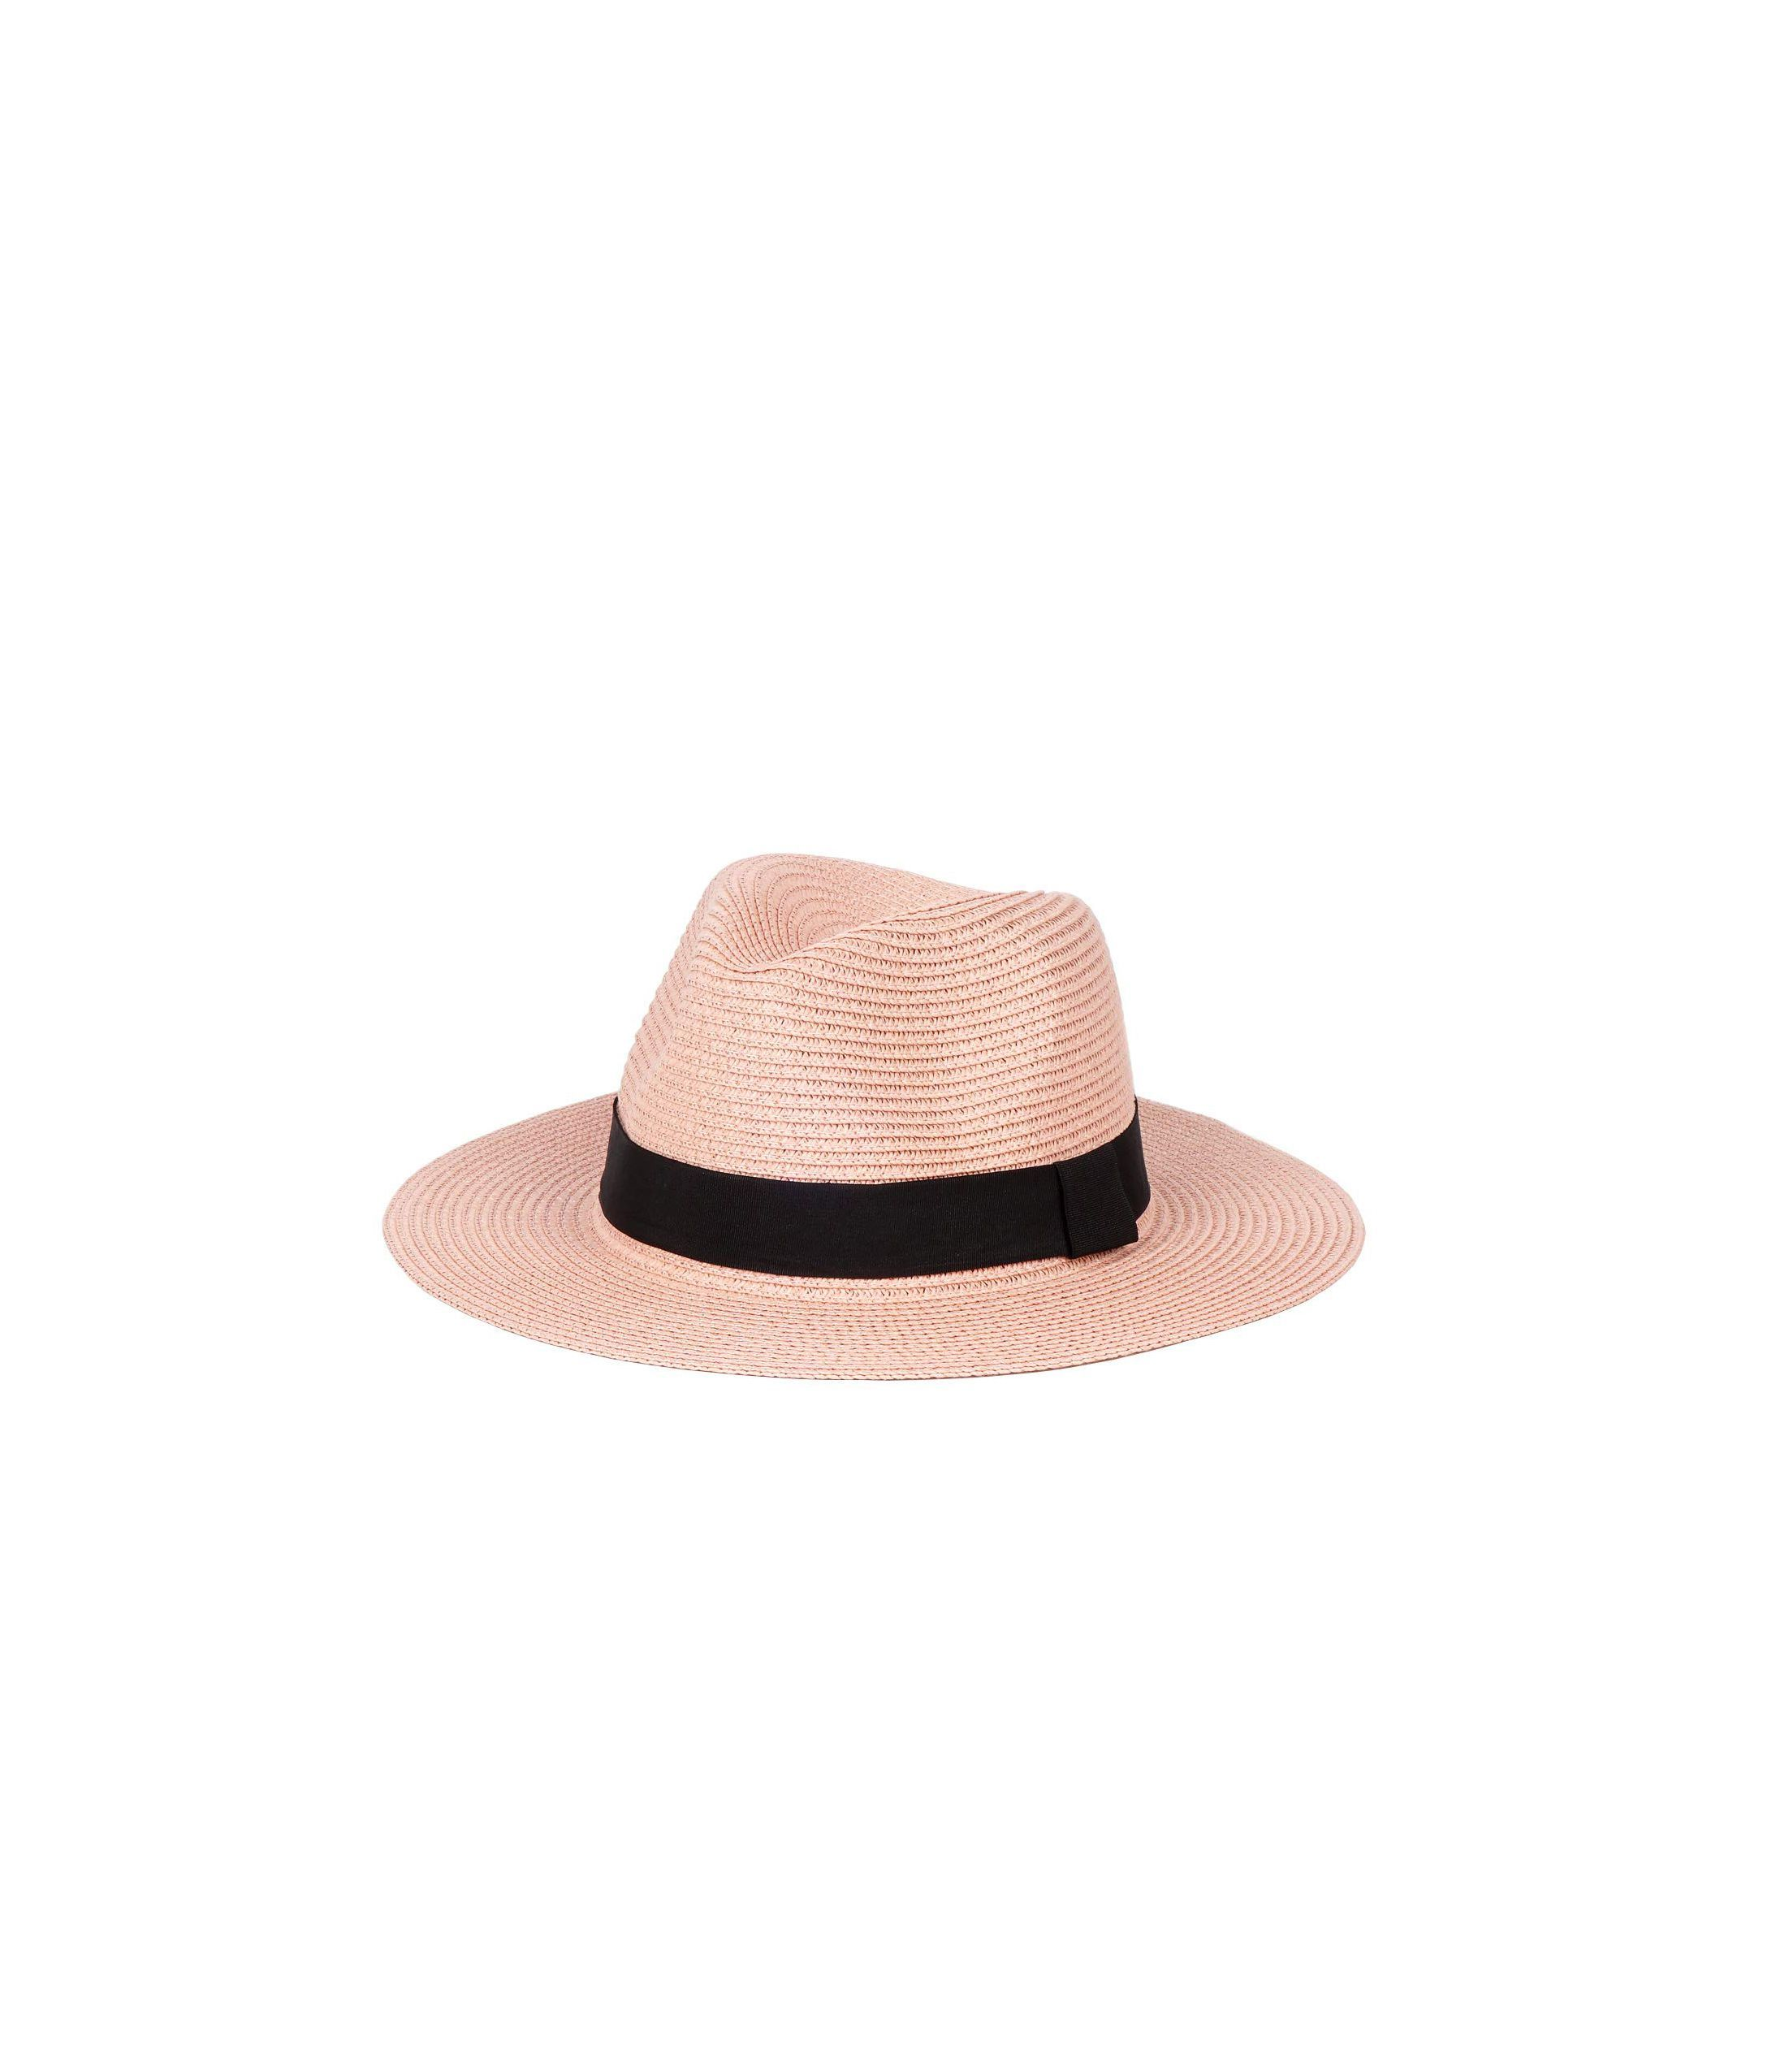 c75661a1 25 Best Sun Hats for Summer 2019 - Floppy, Woven Straw, More